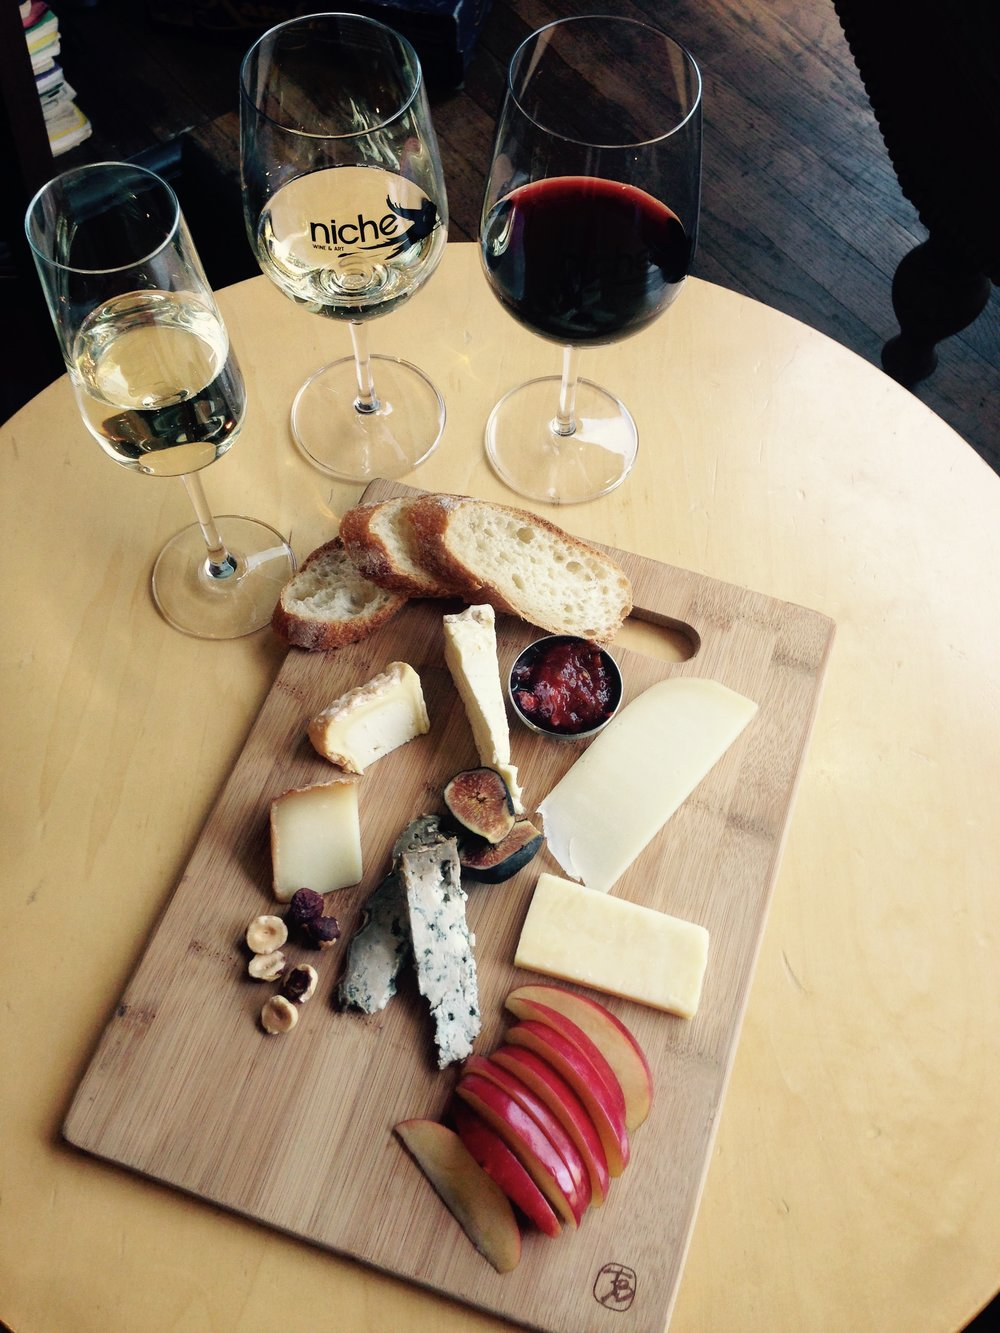 8-14-15-wine-column-cheese.jpg